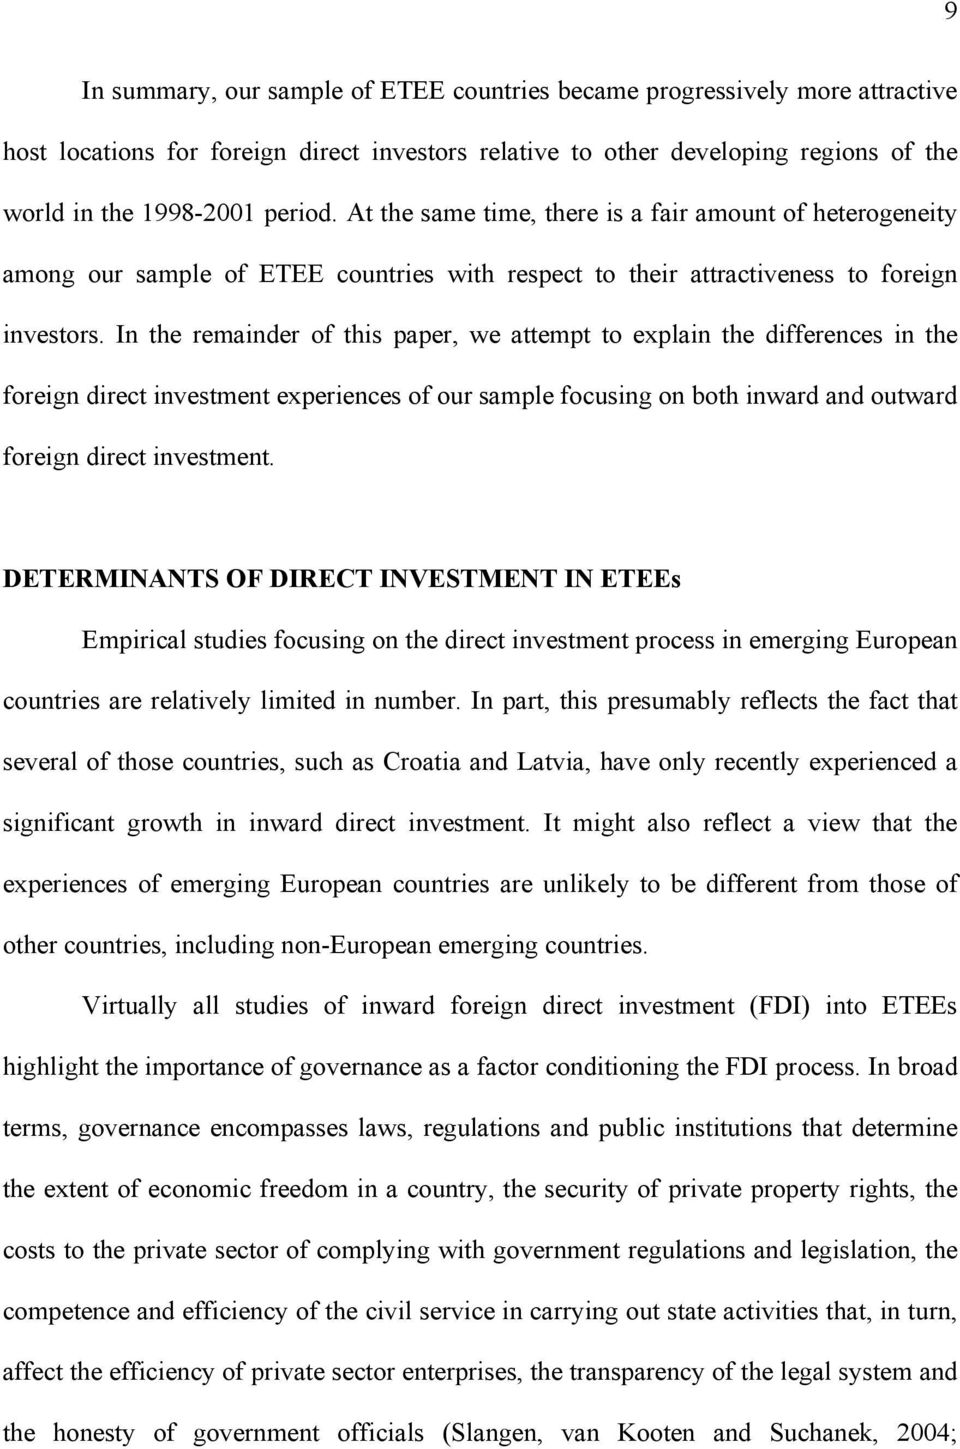 In the remainder of this paper, we attempt to explain the differences in the foreign direct investment experiences of our sample focusing on both inward and outward foreign direct investment.